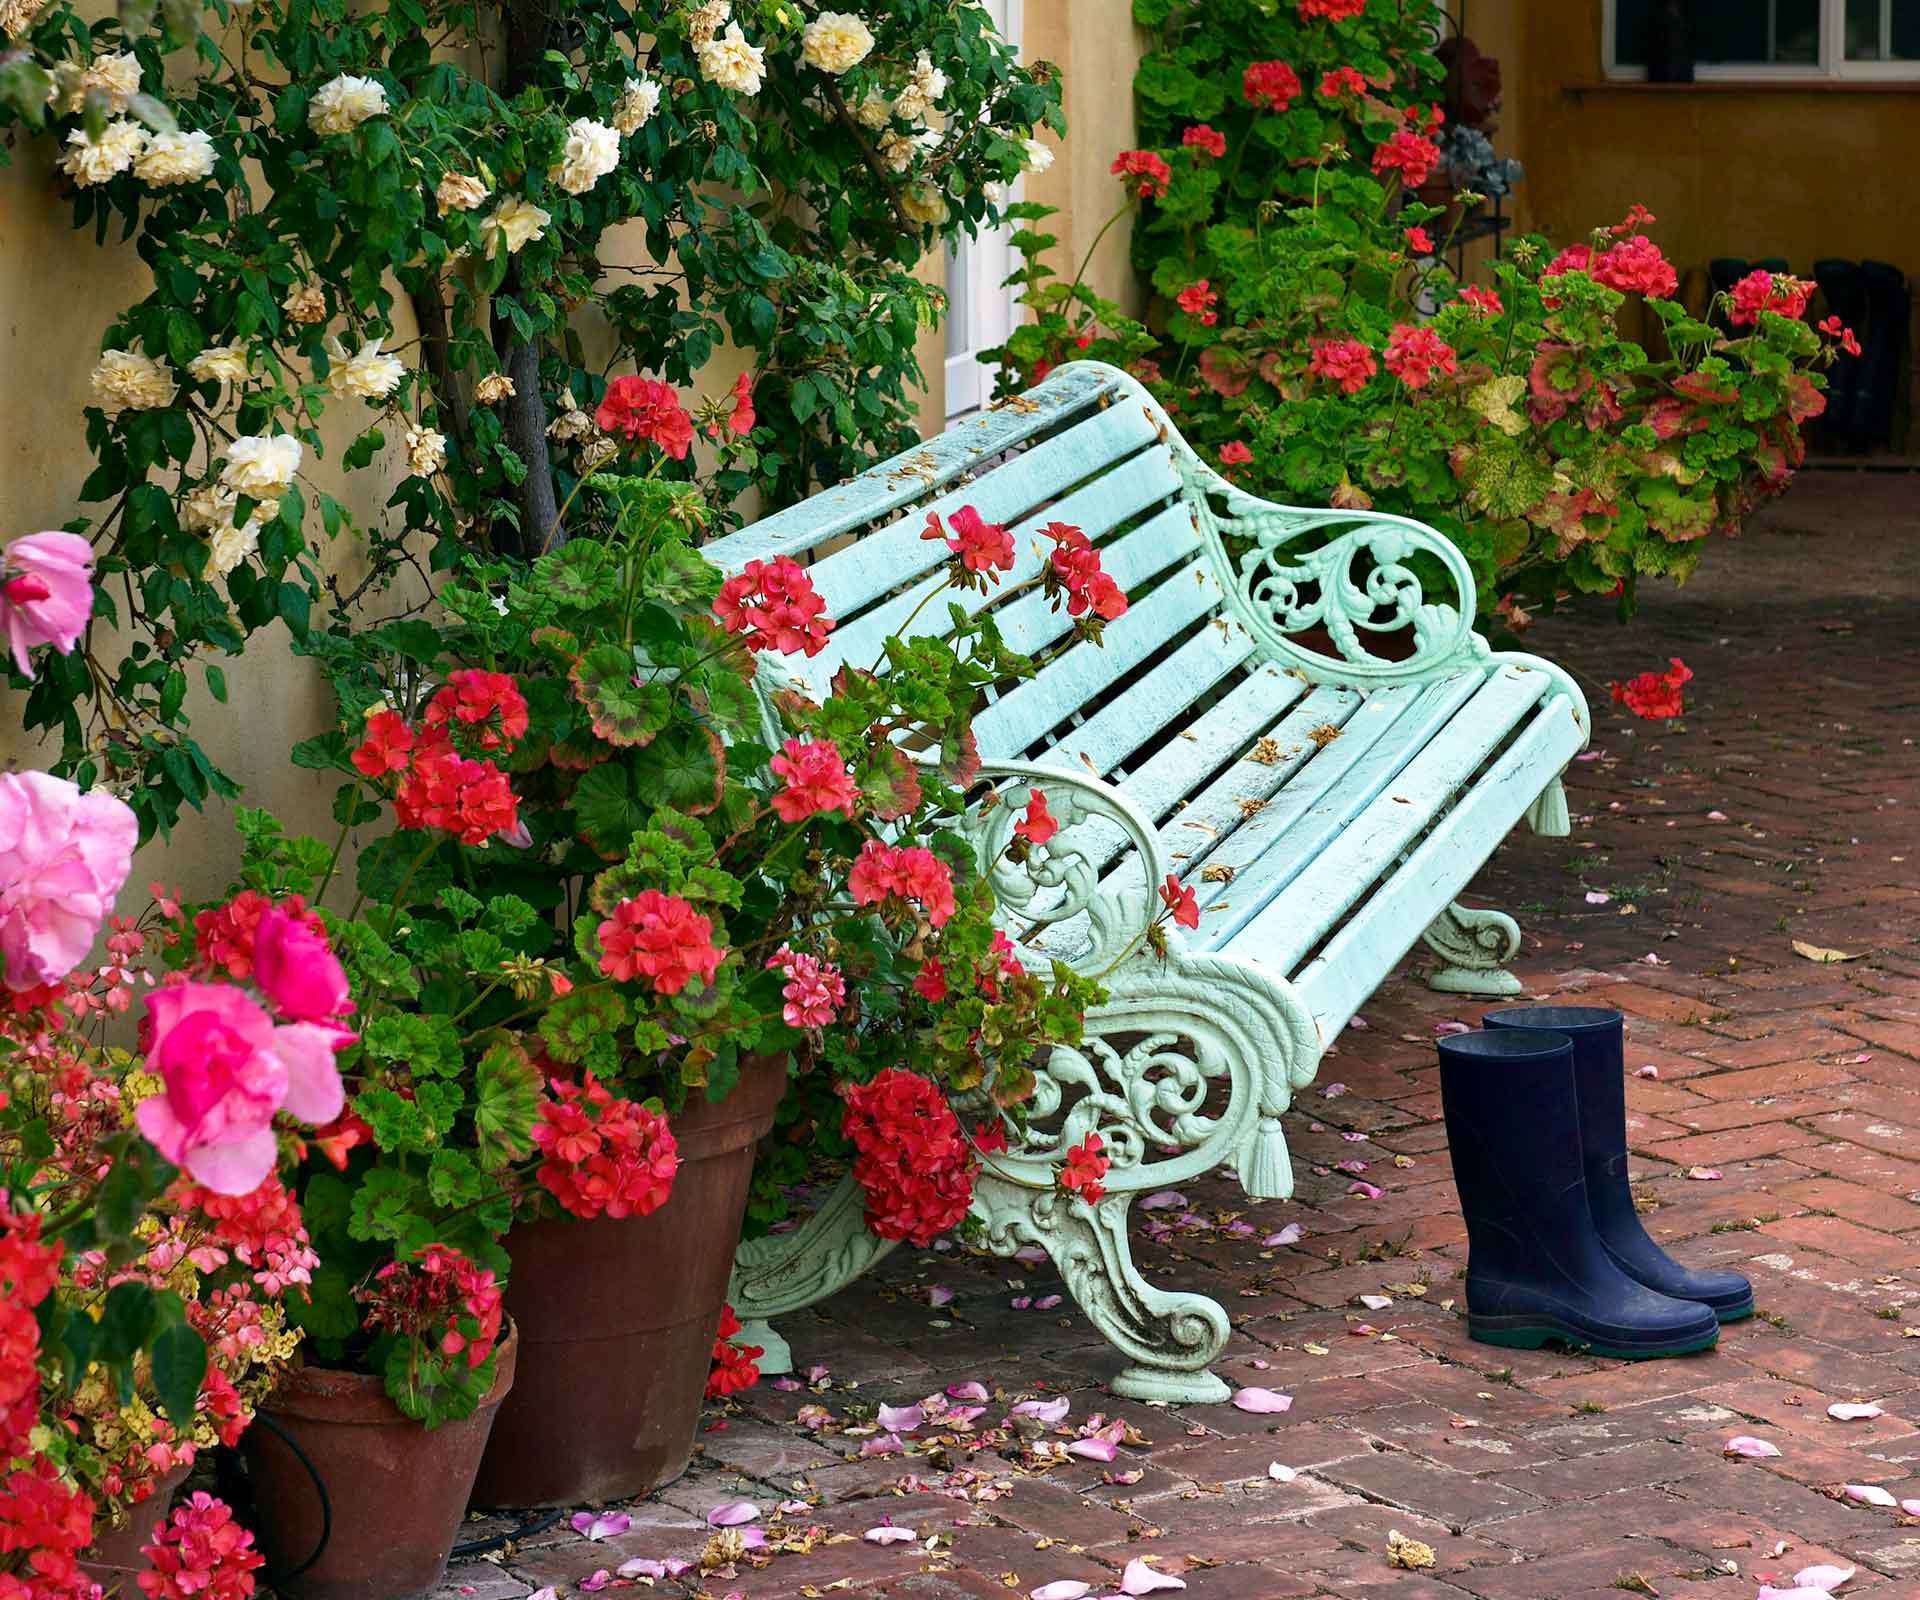 How to grow roses: Planting, pruning and troubleshooting